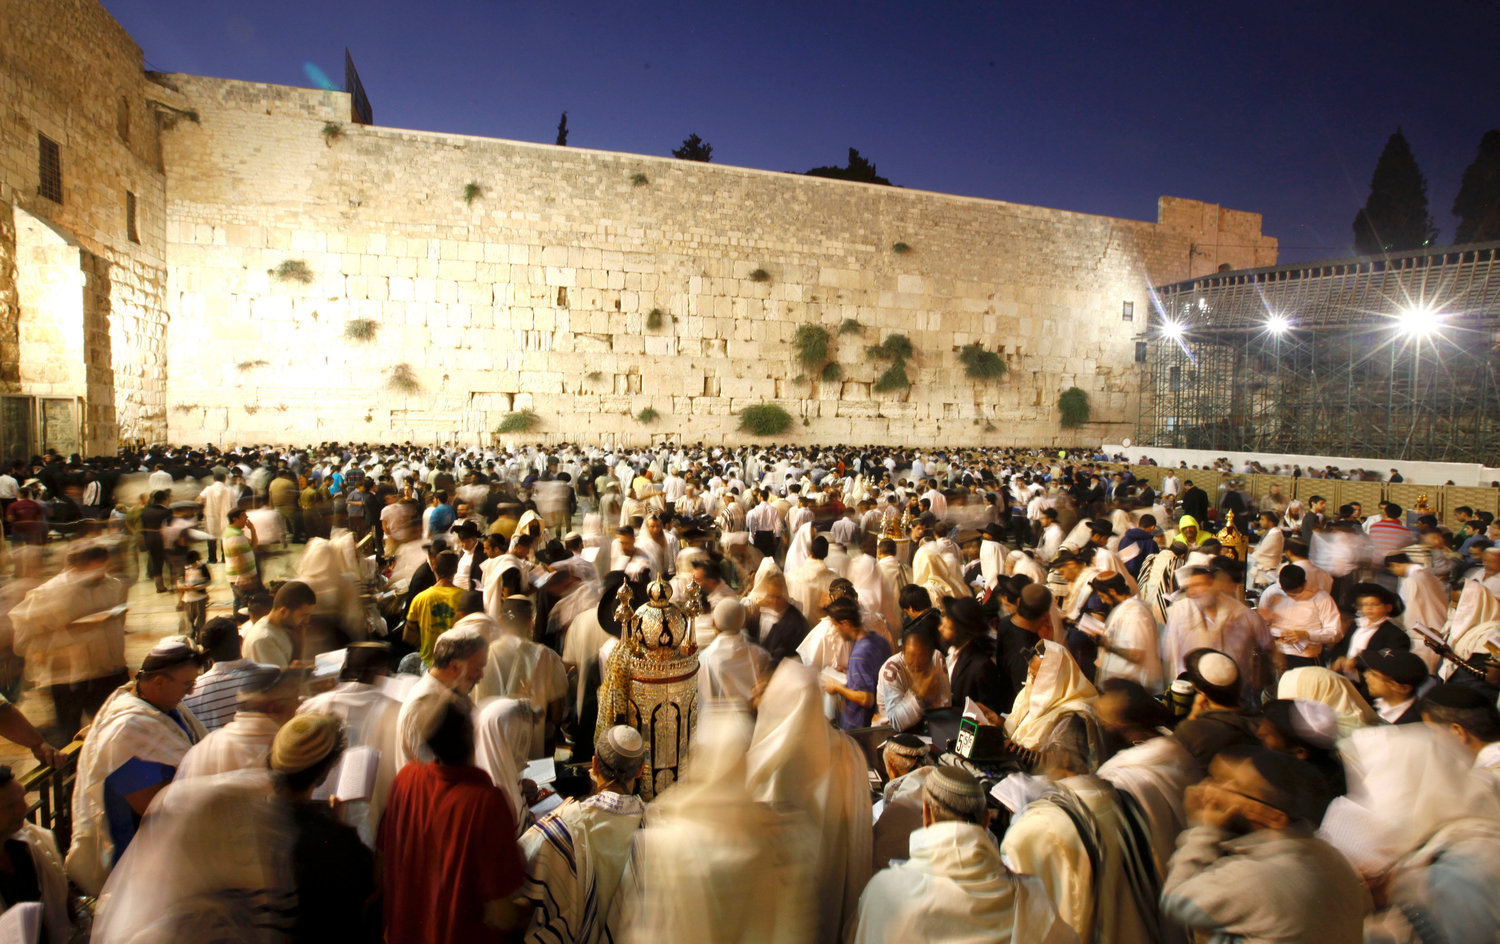 Worshippers at the Kotel early on Tisha B'Av morning in 2011.